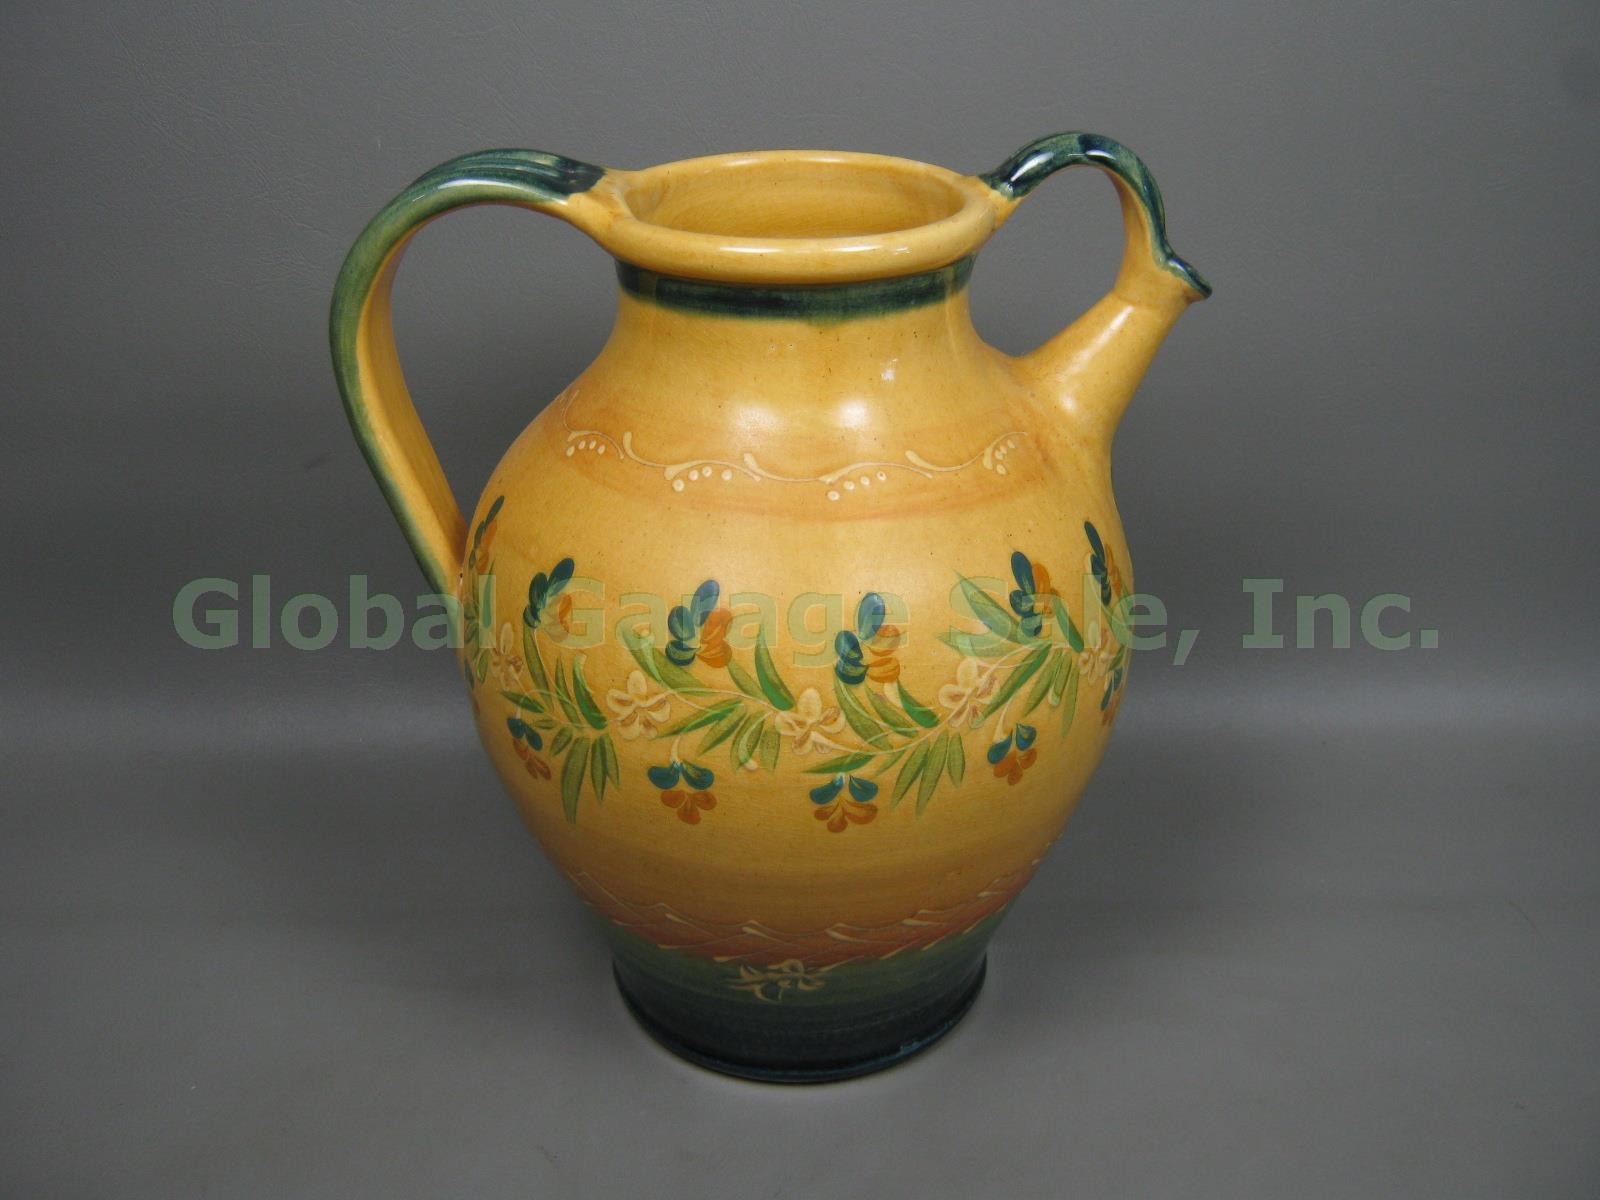 China Porcelain Pottery Sold By Global Garage Sale